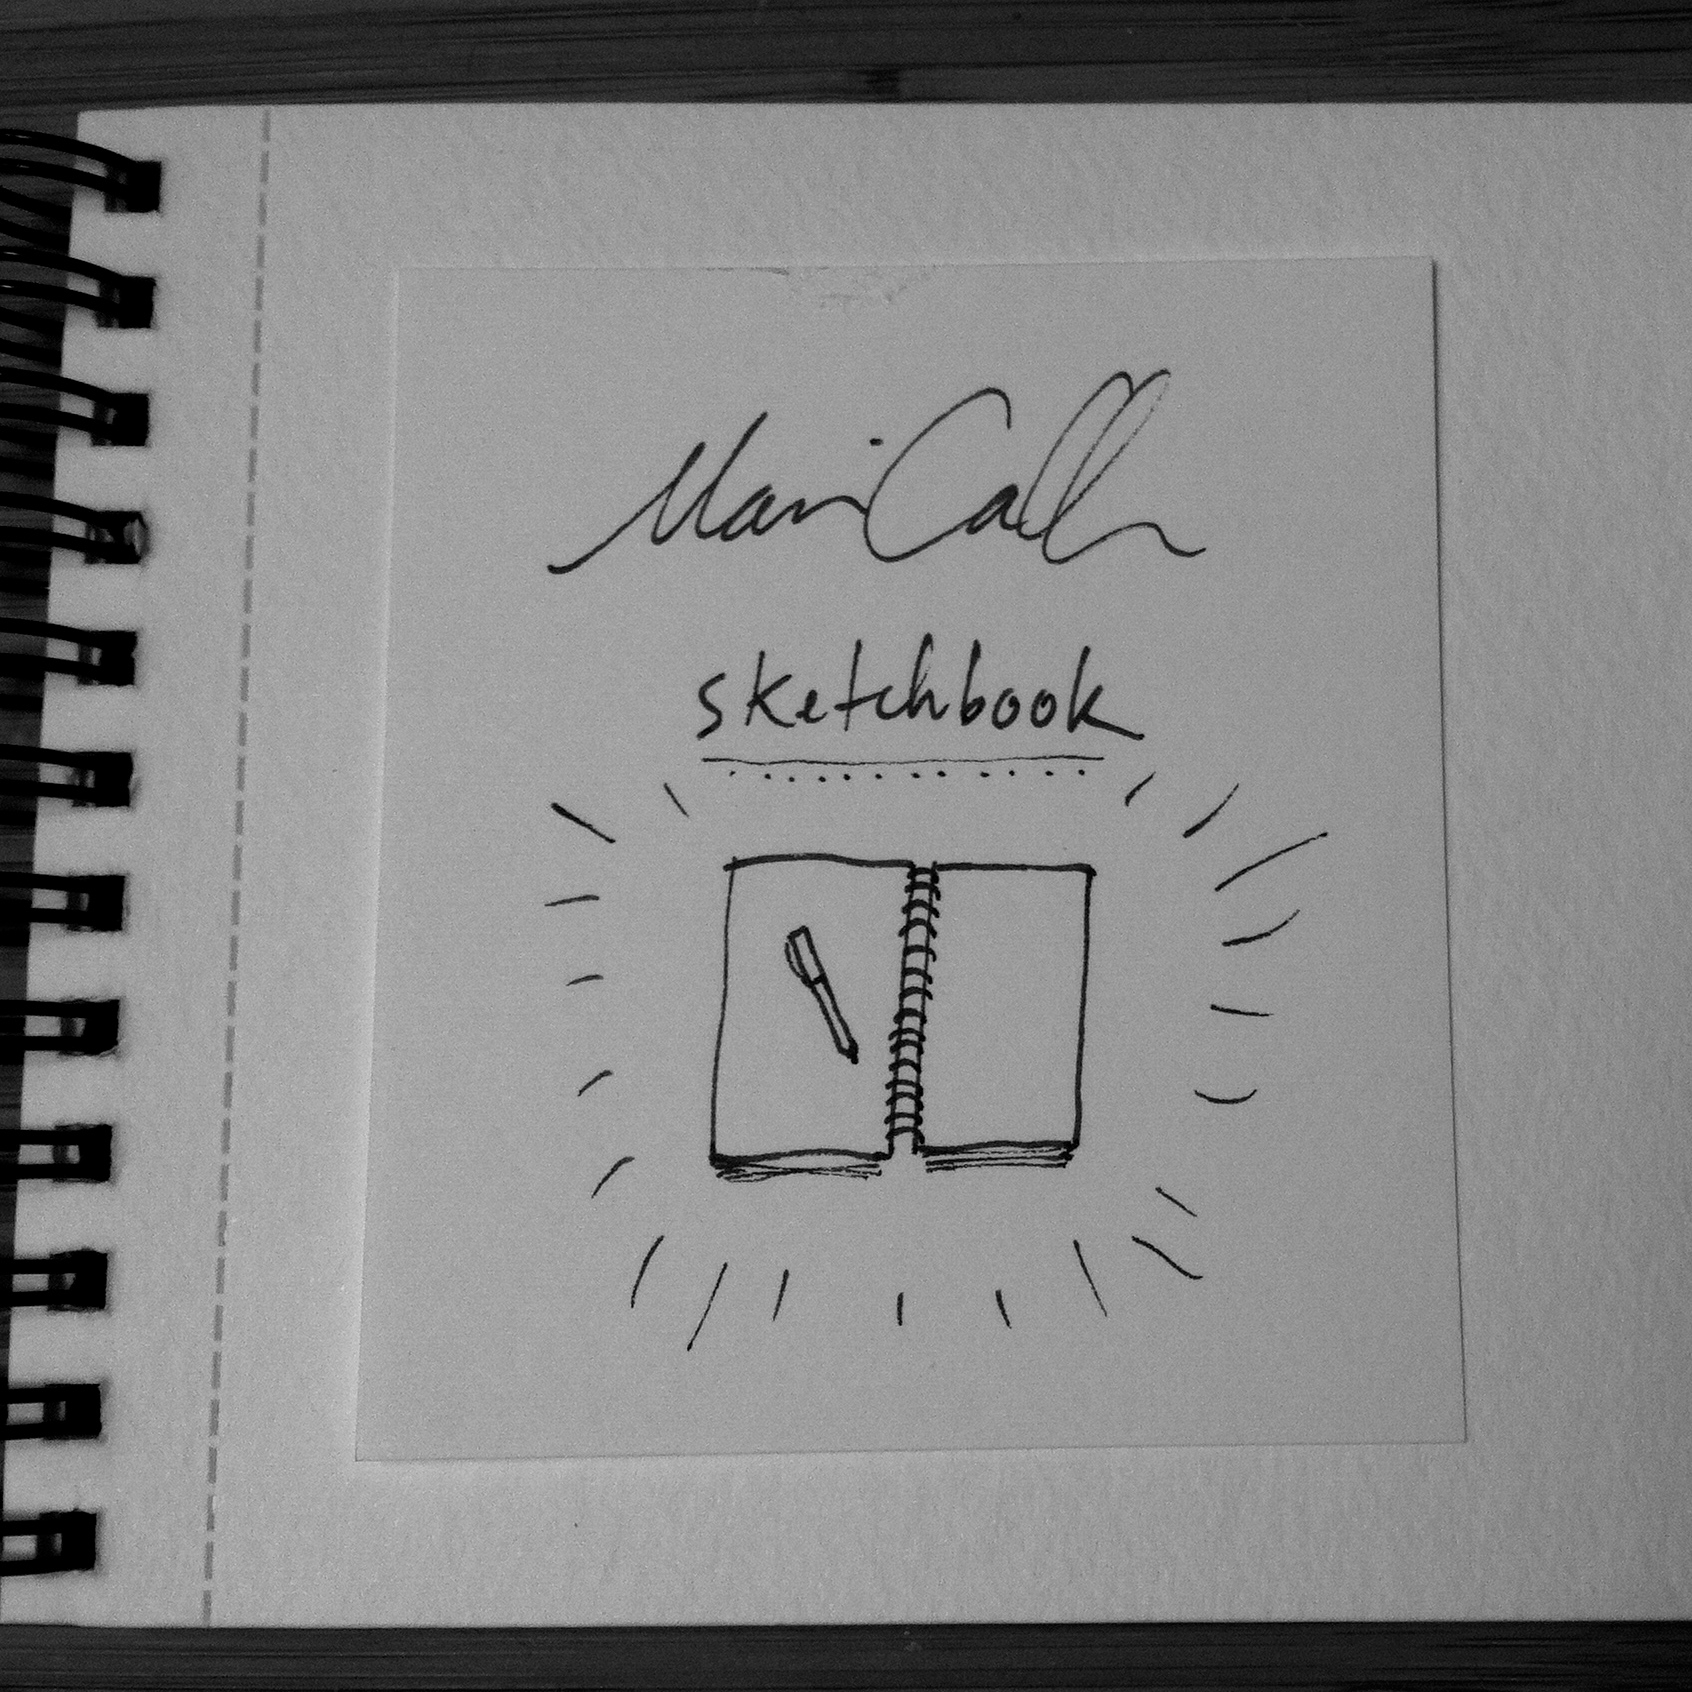 Sketchbook album by Marian Call